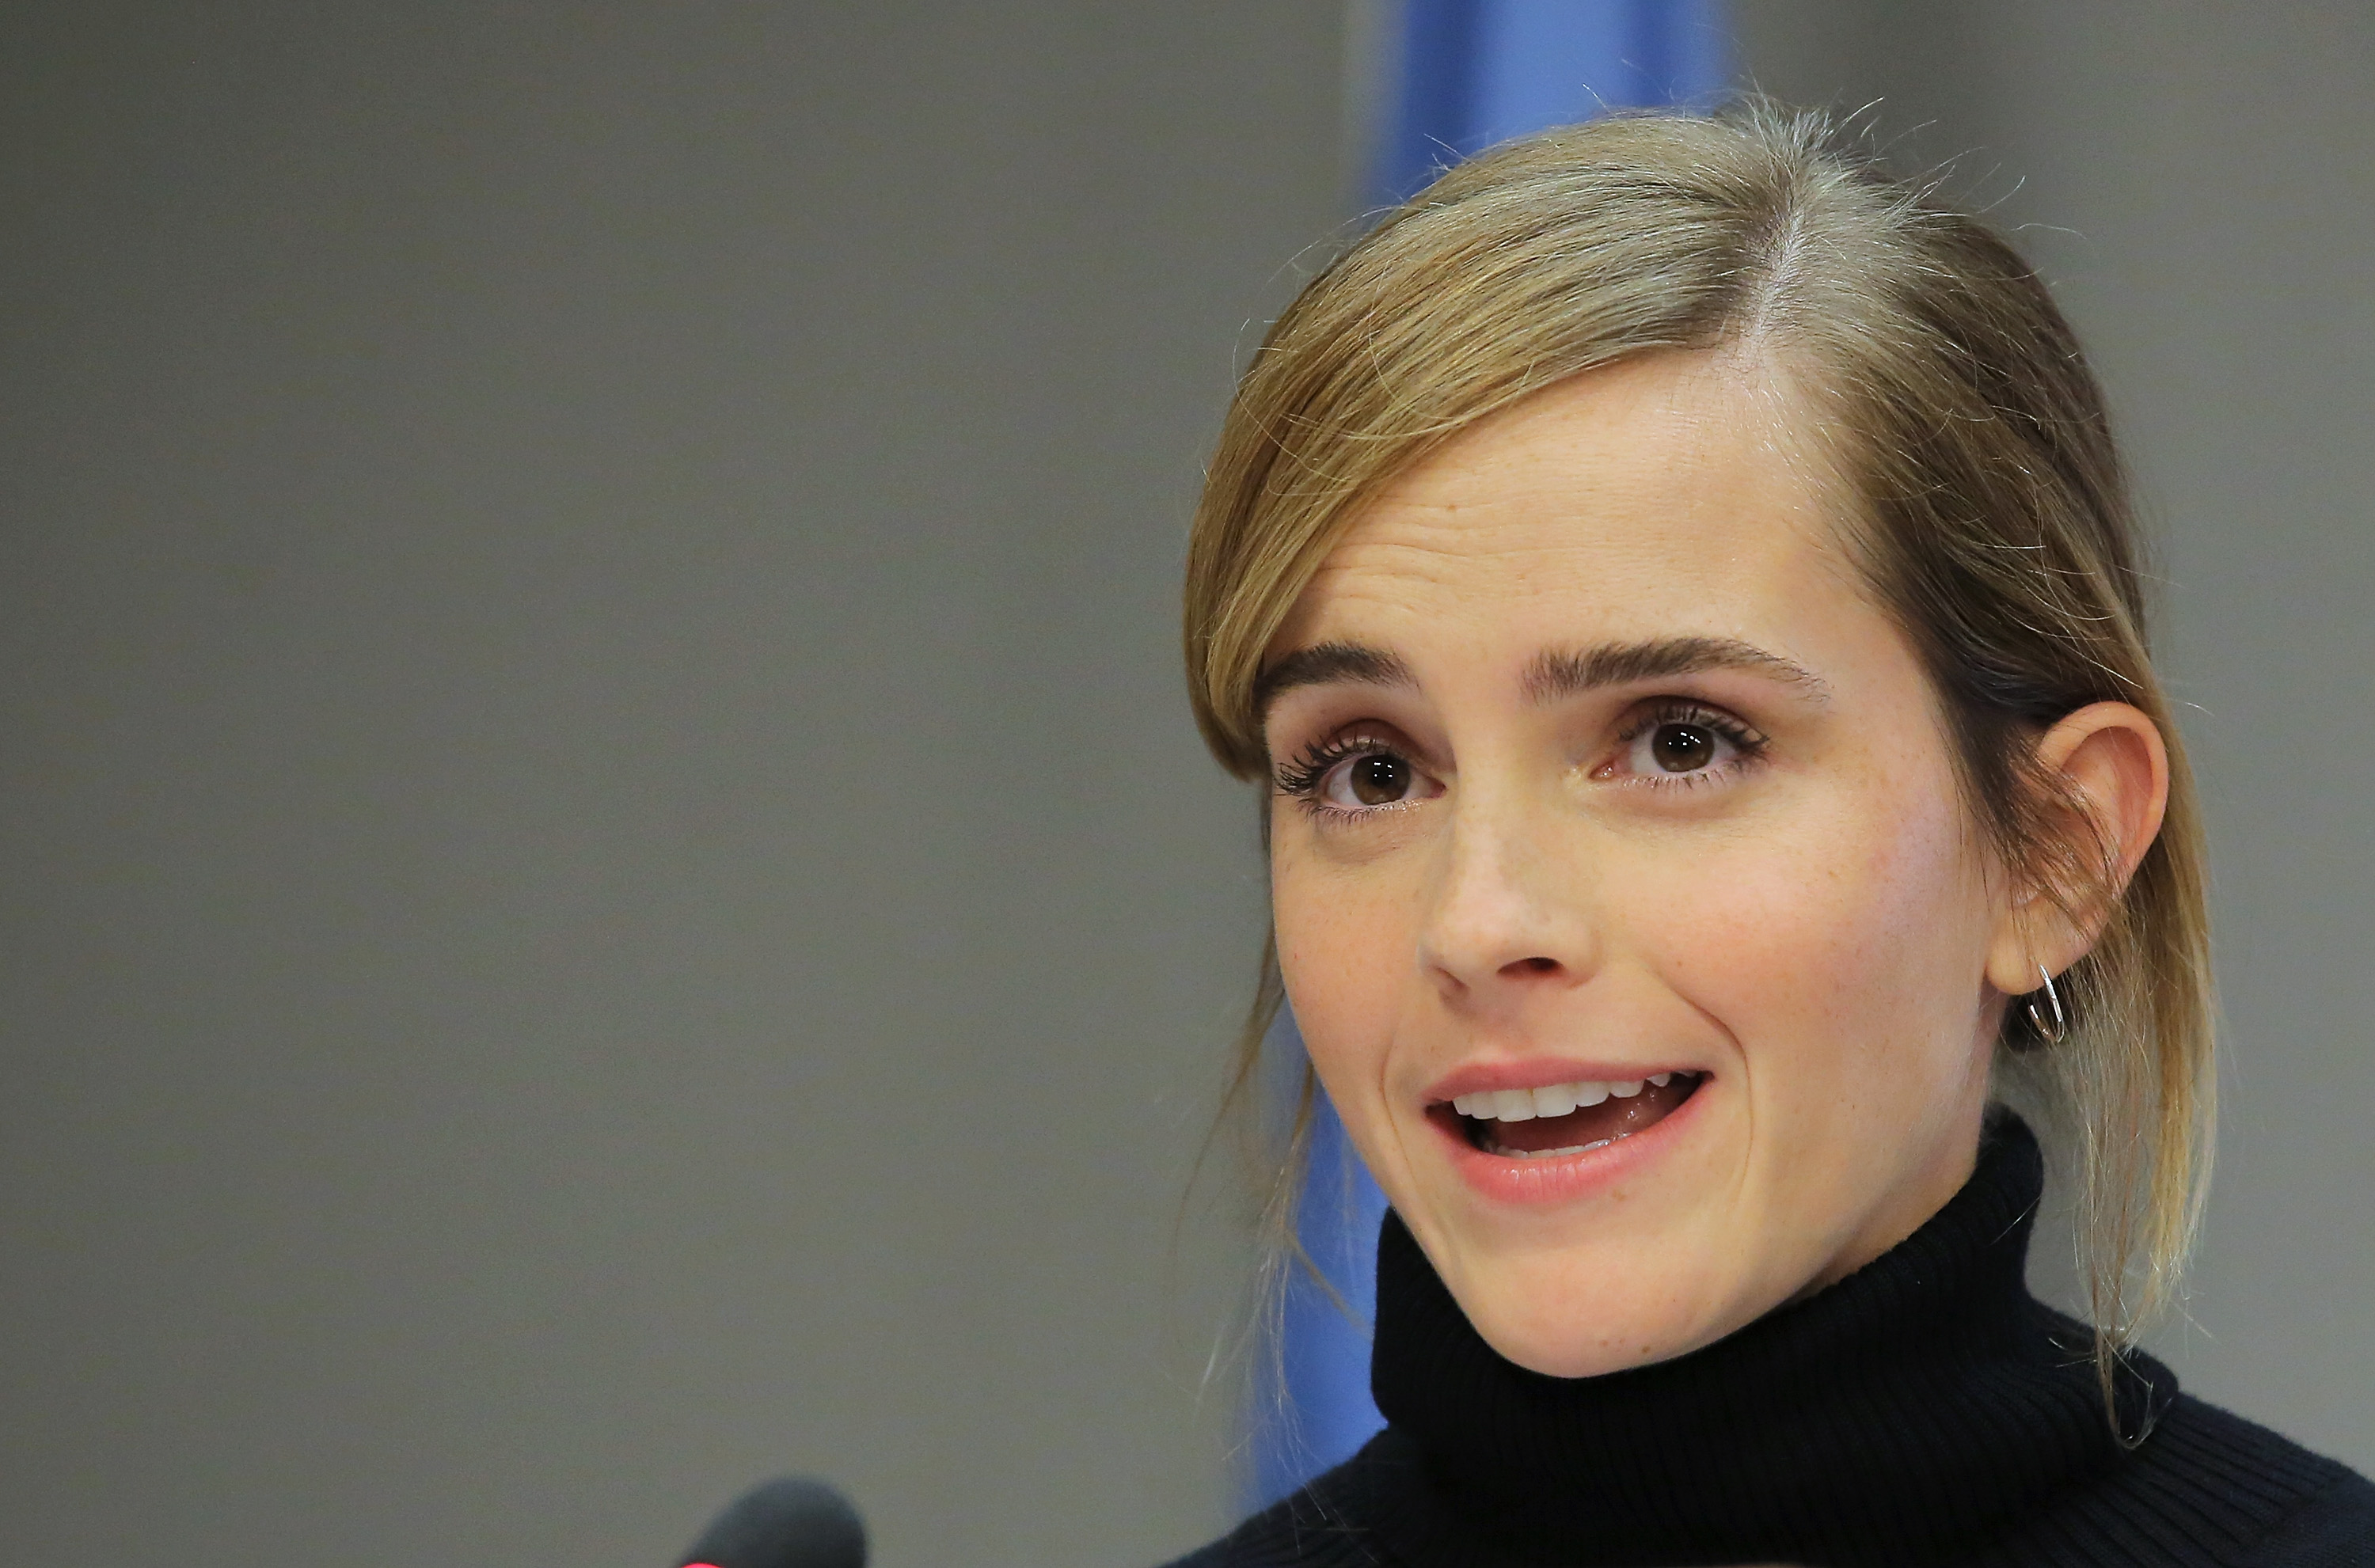 Actress Emma Watson speaks at the launch of the HeForShe IMPACT 10x10x10 University Parity Report at The United Nations on Sept. 20, 2016 in New York City.